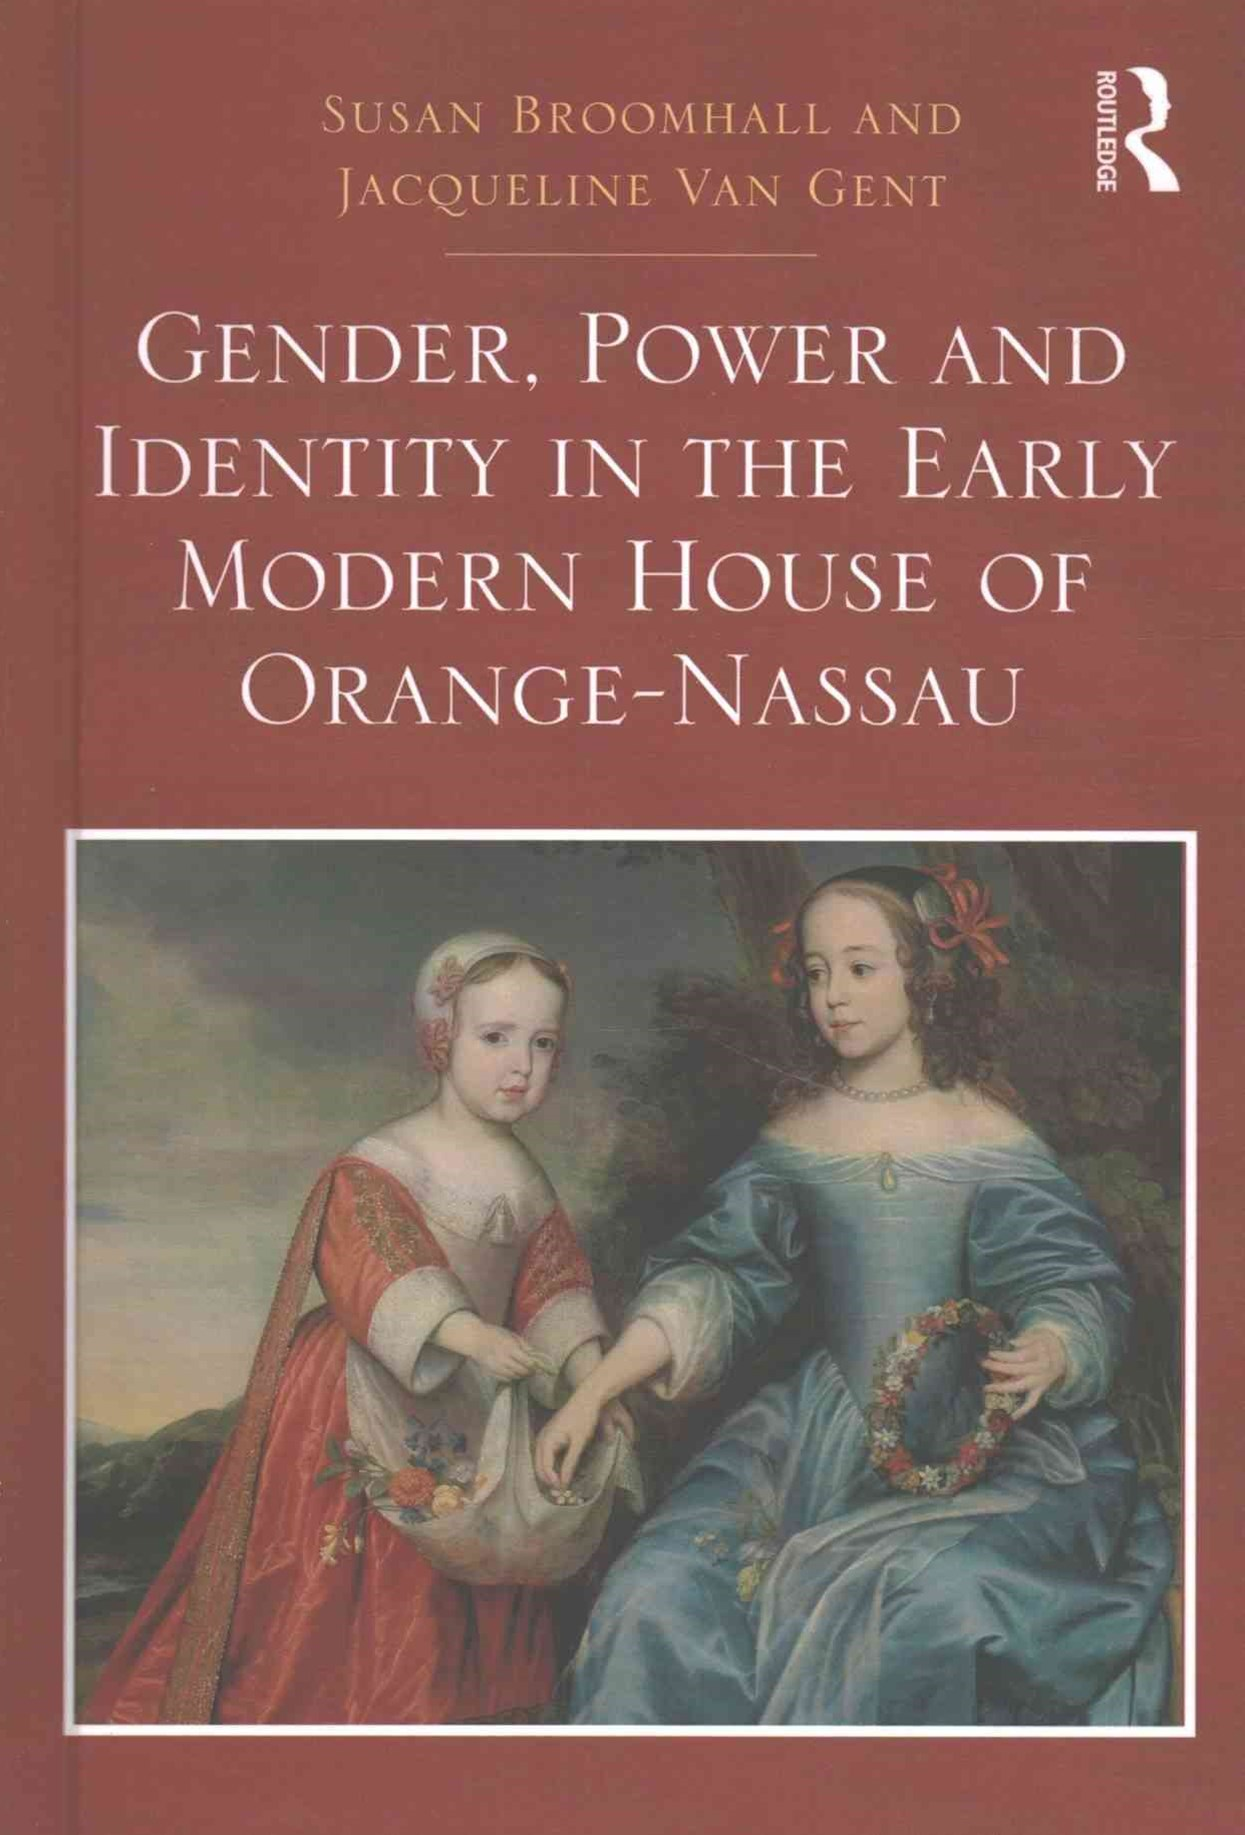 Gender, Power and Identity in the Early Modern House of Orange-Nassau